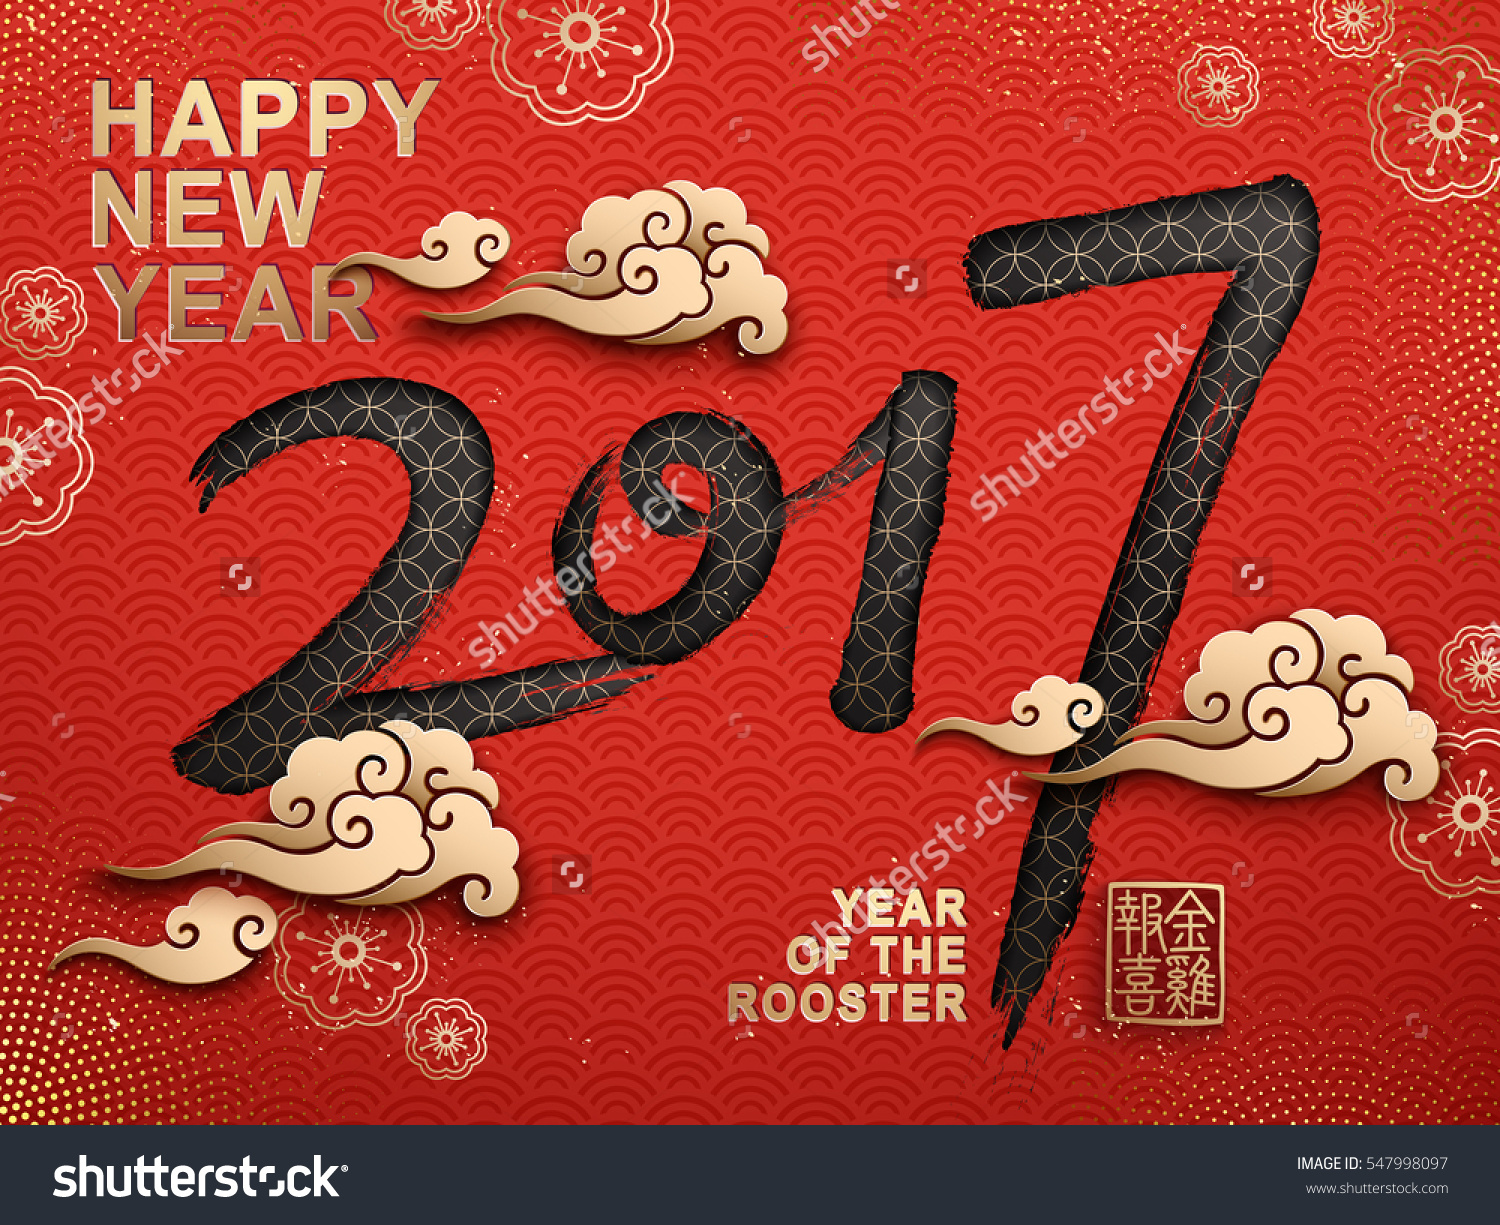 2017 Happy New Year with golden cloud elements, flower elements, and  happy new year of rooster in english and chinese words with red background #547998097